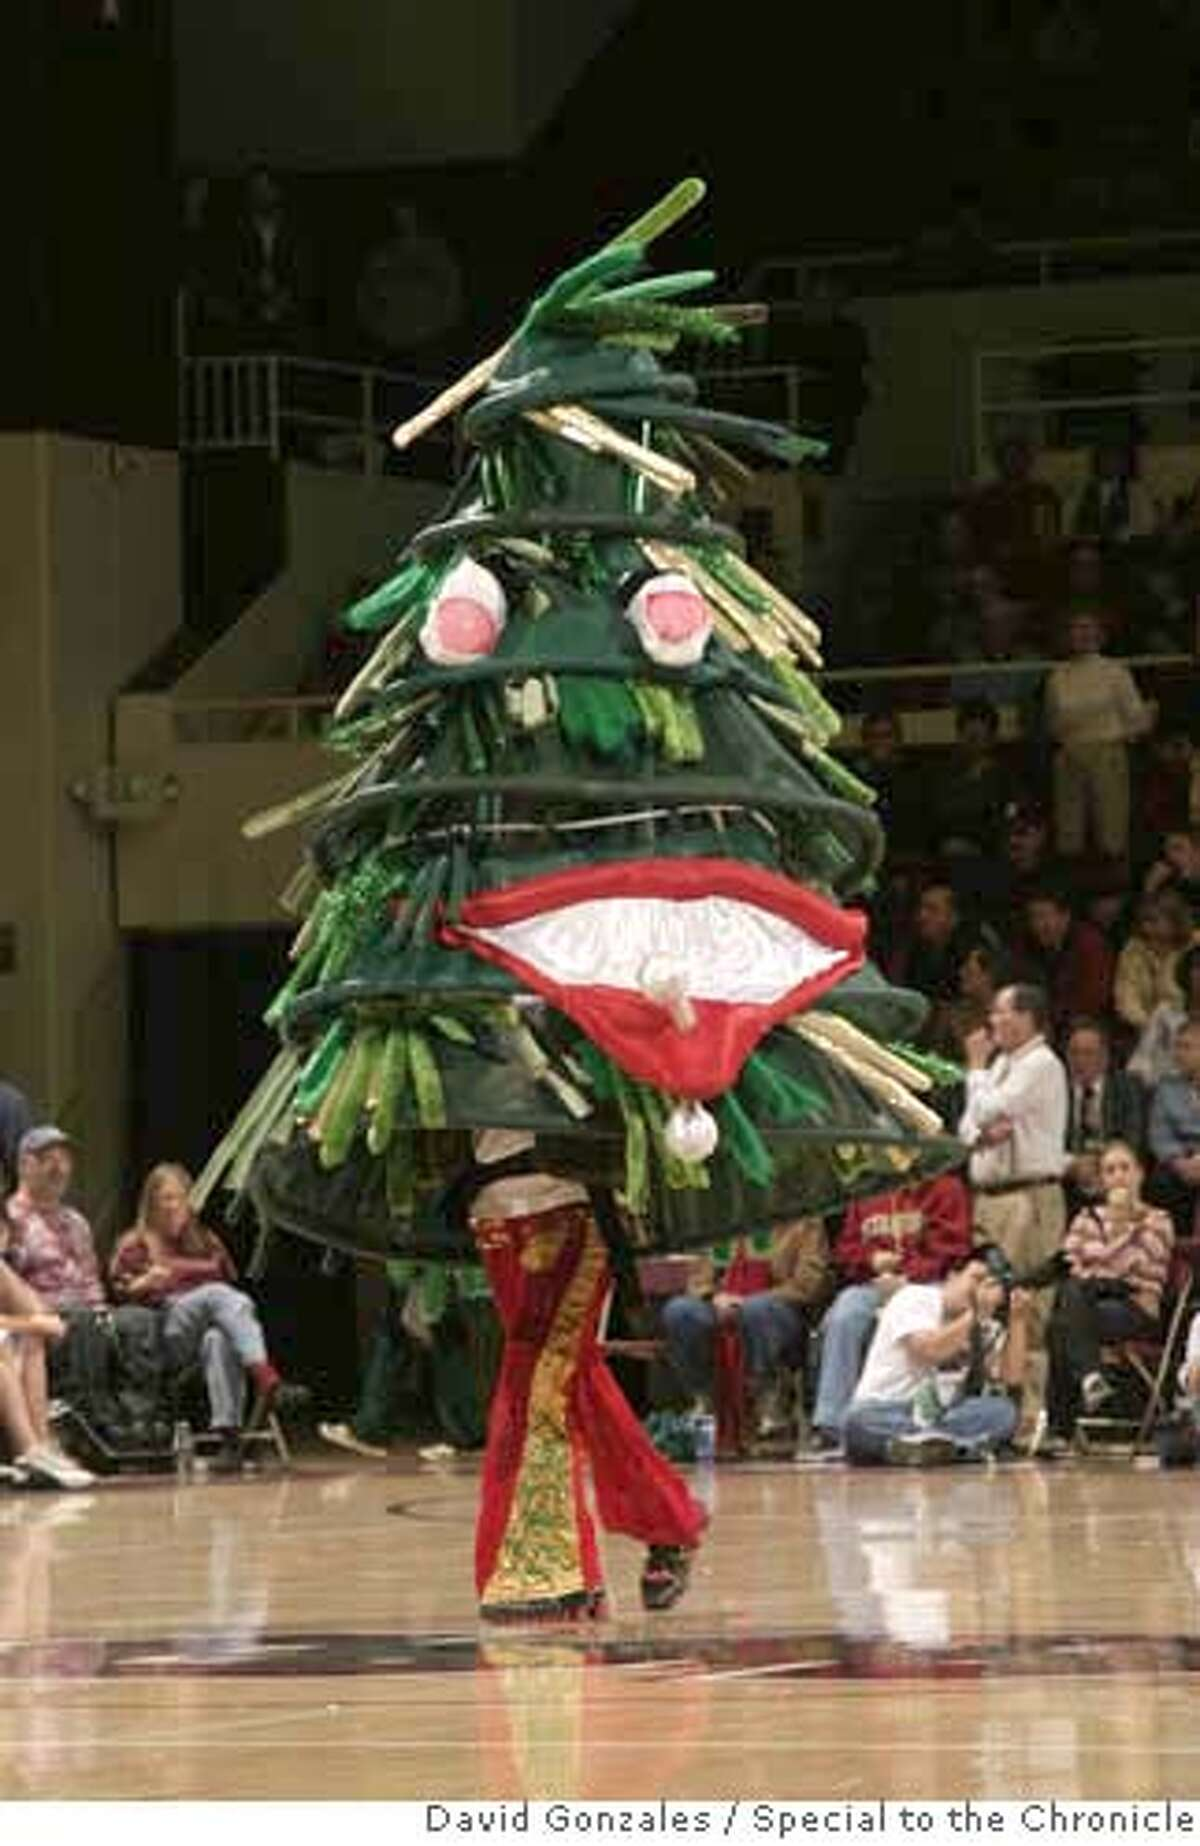 STANFORD_TREE_004.JPG The Stanford Tree during Stanford's 74-67 loss to Tennessee at Maples Pavilion in Stanford, CA. 4 December 2005: Photo by David Gonzales/Special to the Chronicle.